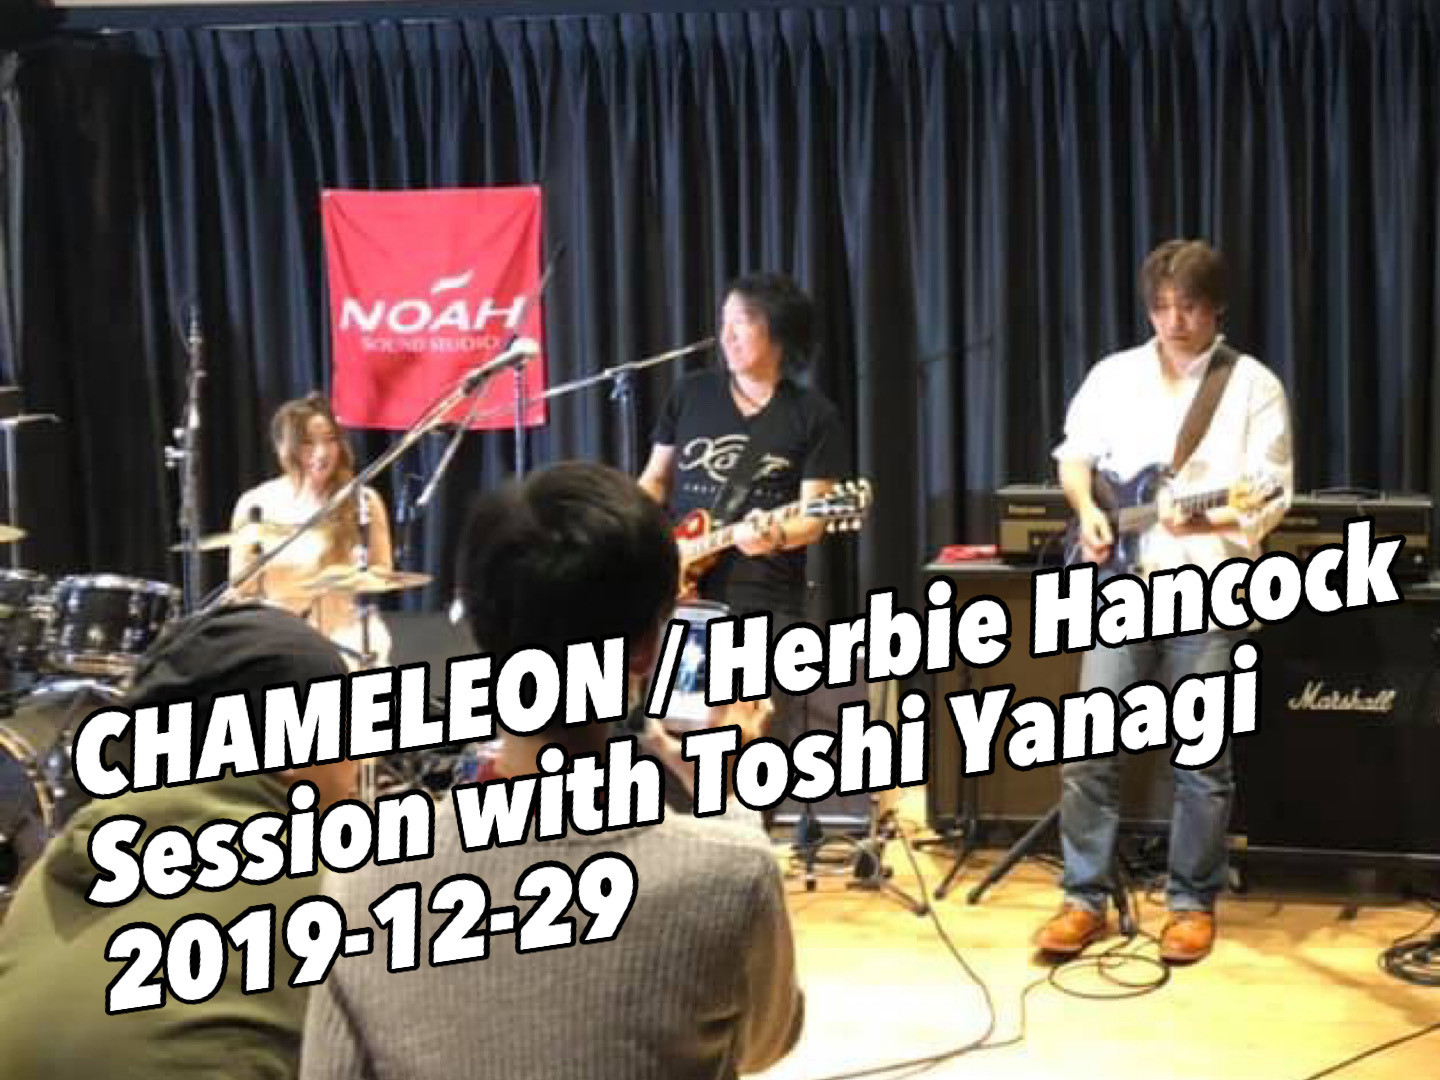 CHAMELEON / Herbie Hancock Session with Toshi Yanagi 2019-12-29